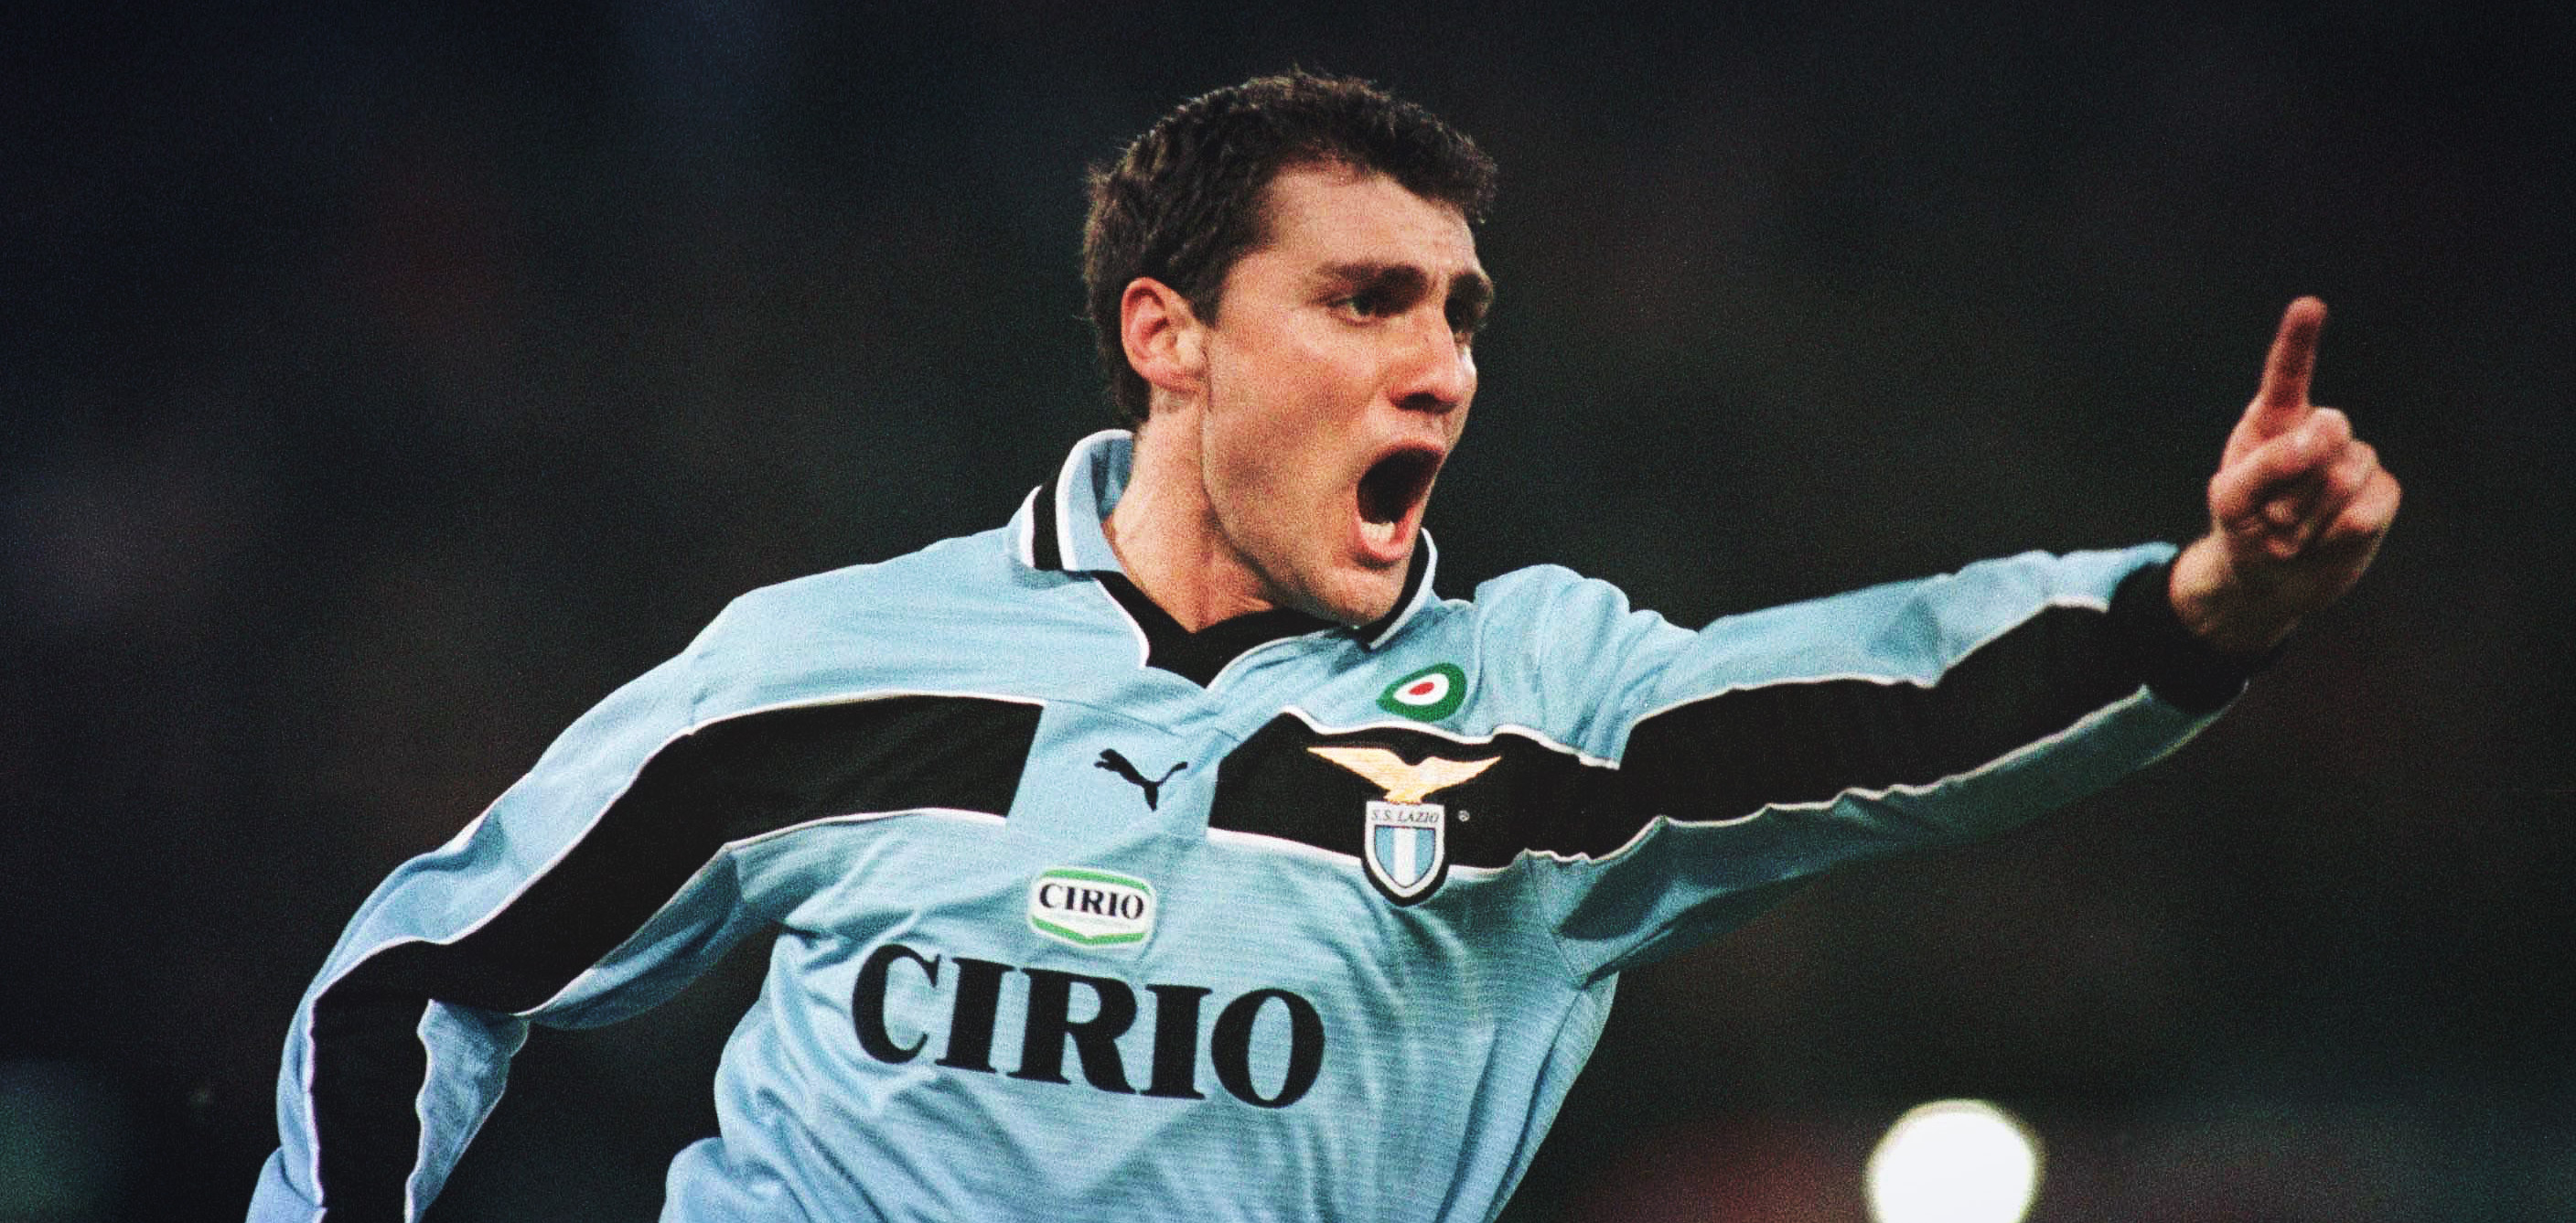 Christian Vieri a decade of brilliance and bad luck